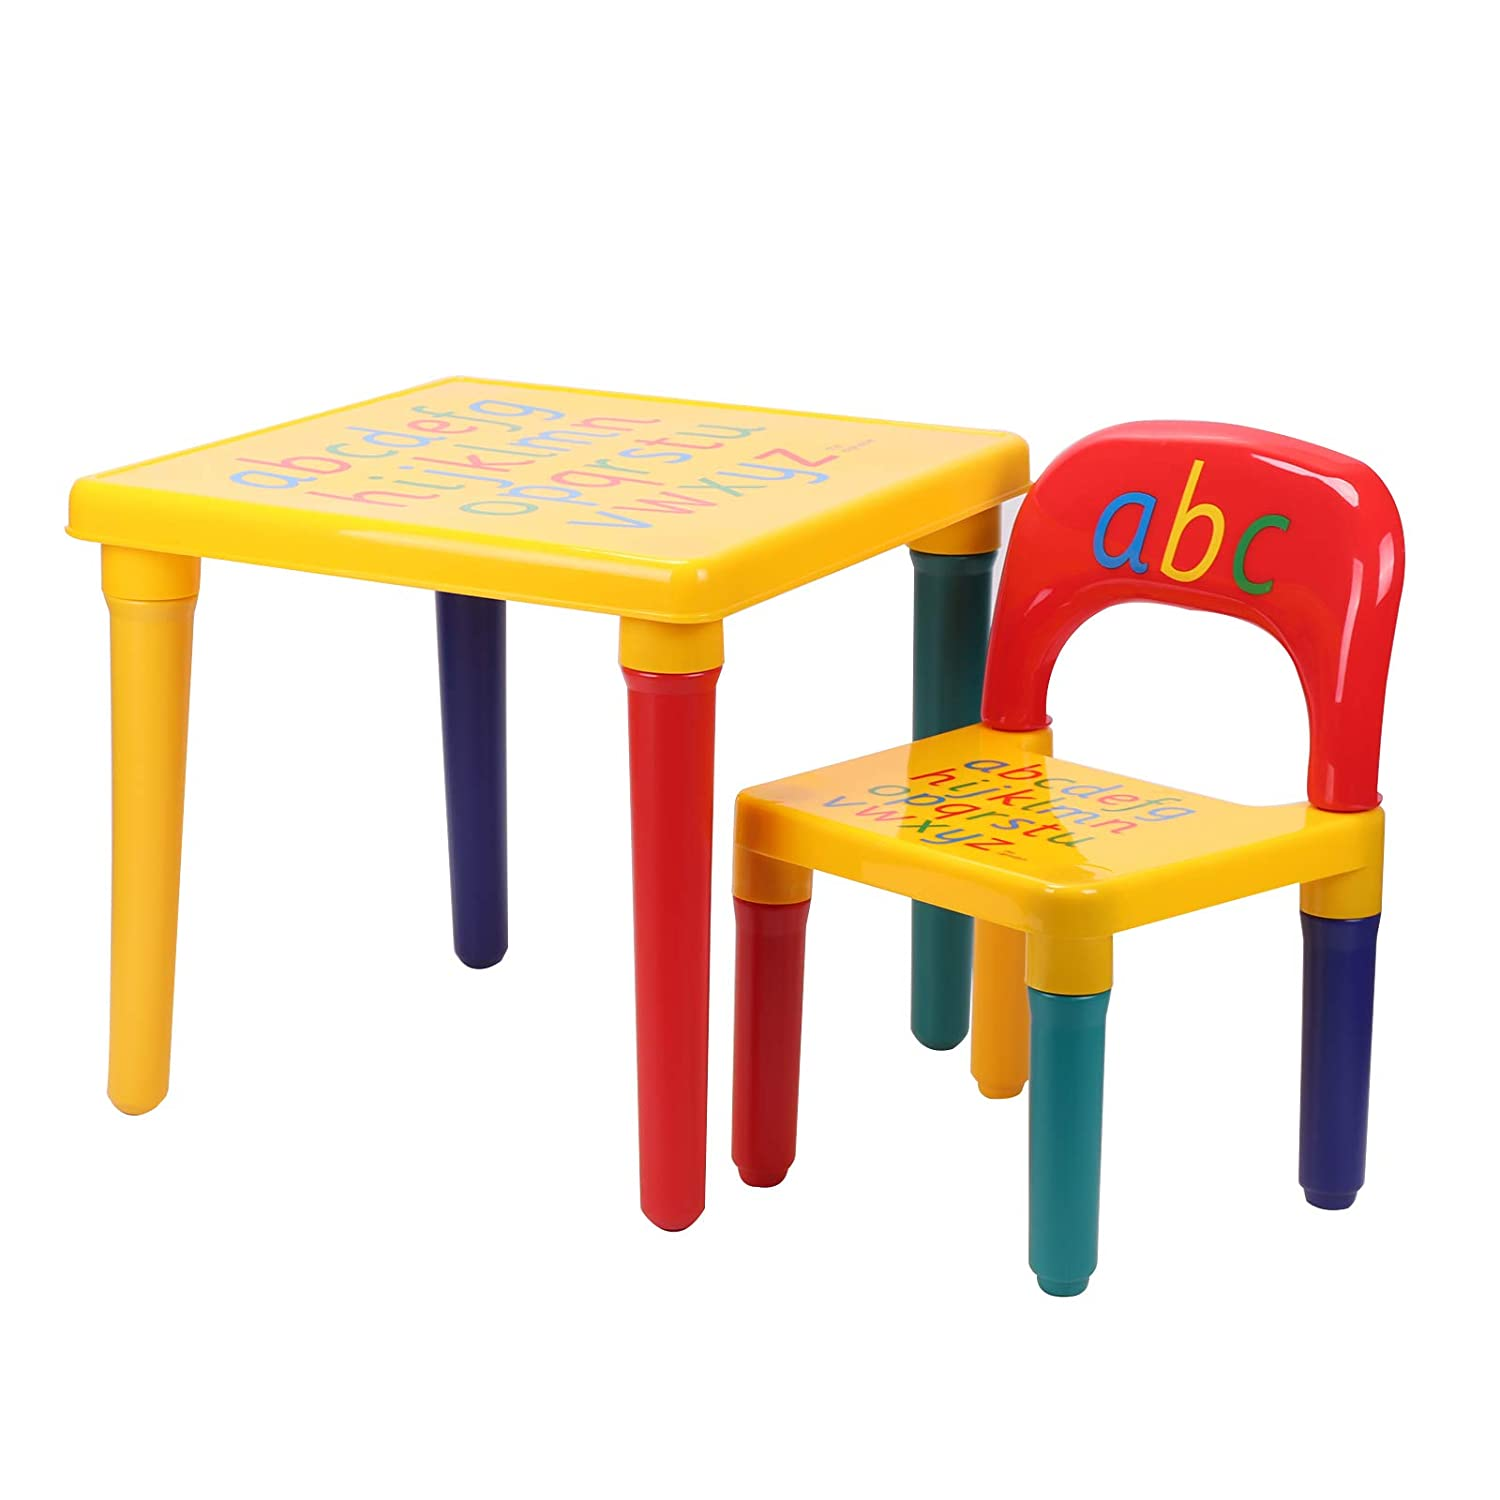 Marvelous Kingsaid Kids Table And Chair Set Abc Alphabet Table Furniture Child Learn Play Educational Present Inzonedesignstudio Interior Chair Design Inzonedesignstudiocom